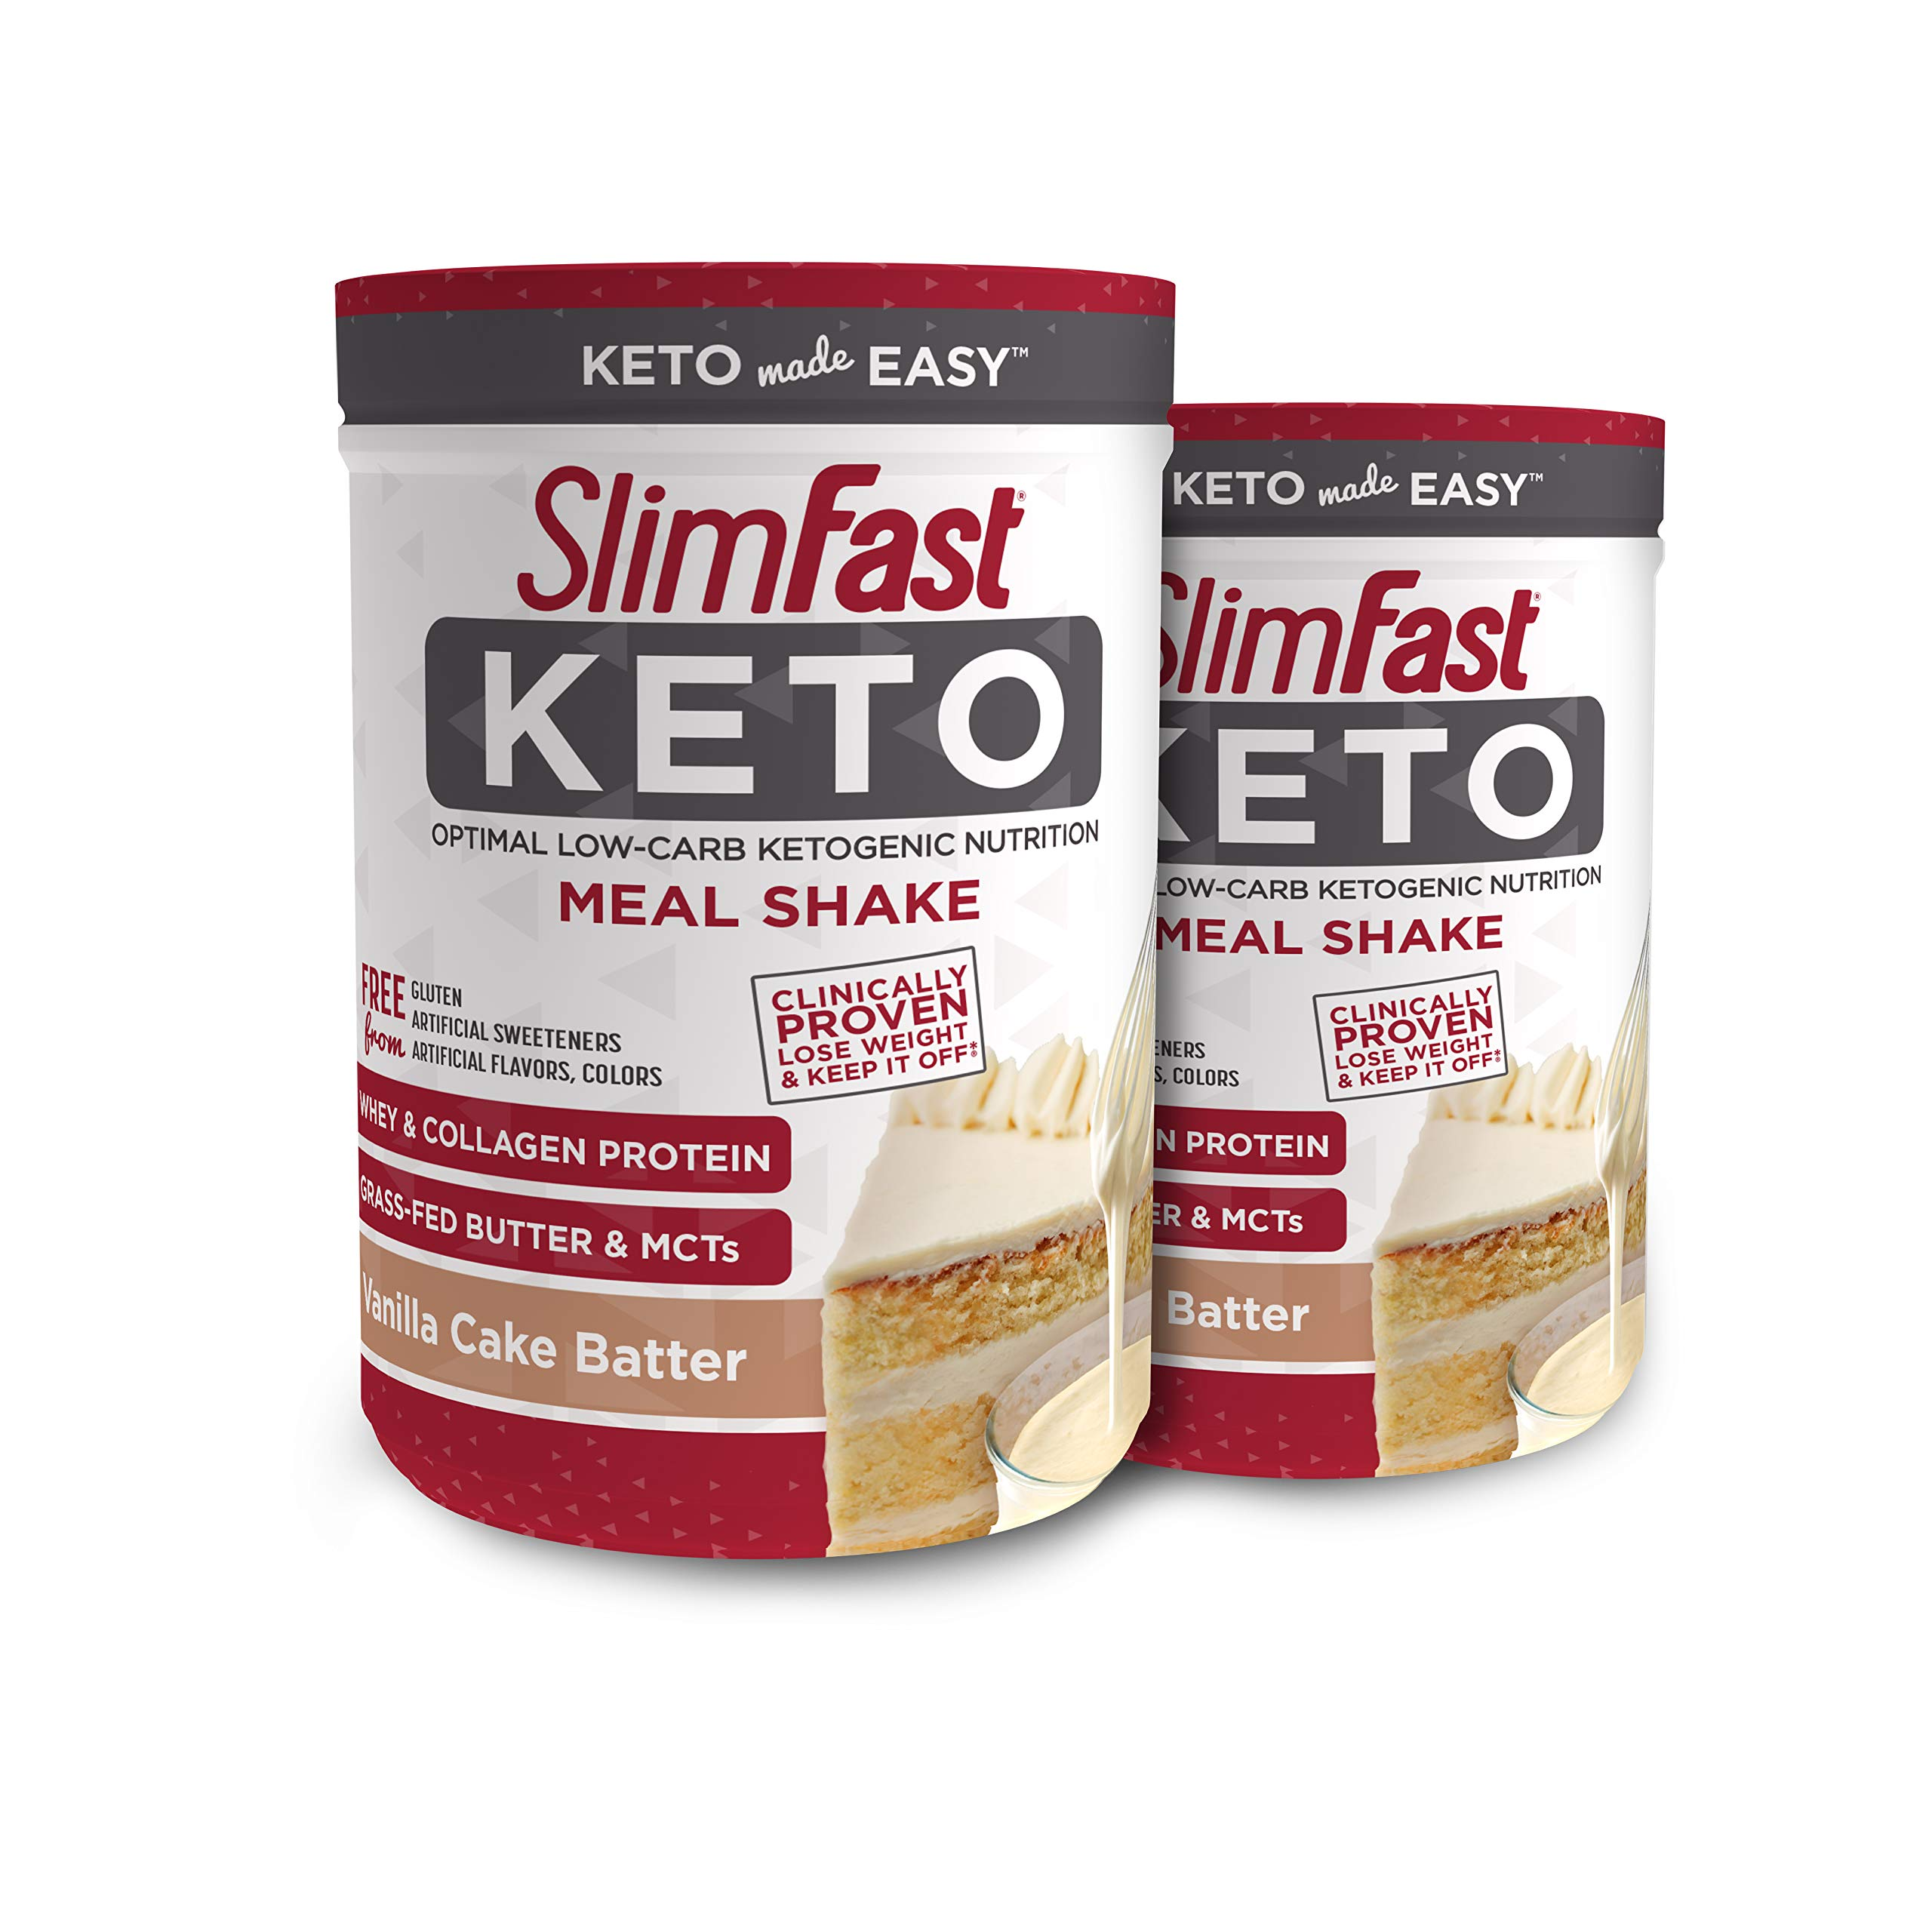 SlimFast 2 Piece Keto Meal Replacement Powder Vanilla Cake Batter, 12.2 Oz, pack of 2 by SlimFast